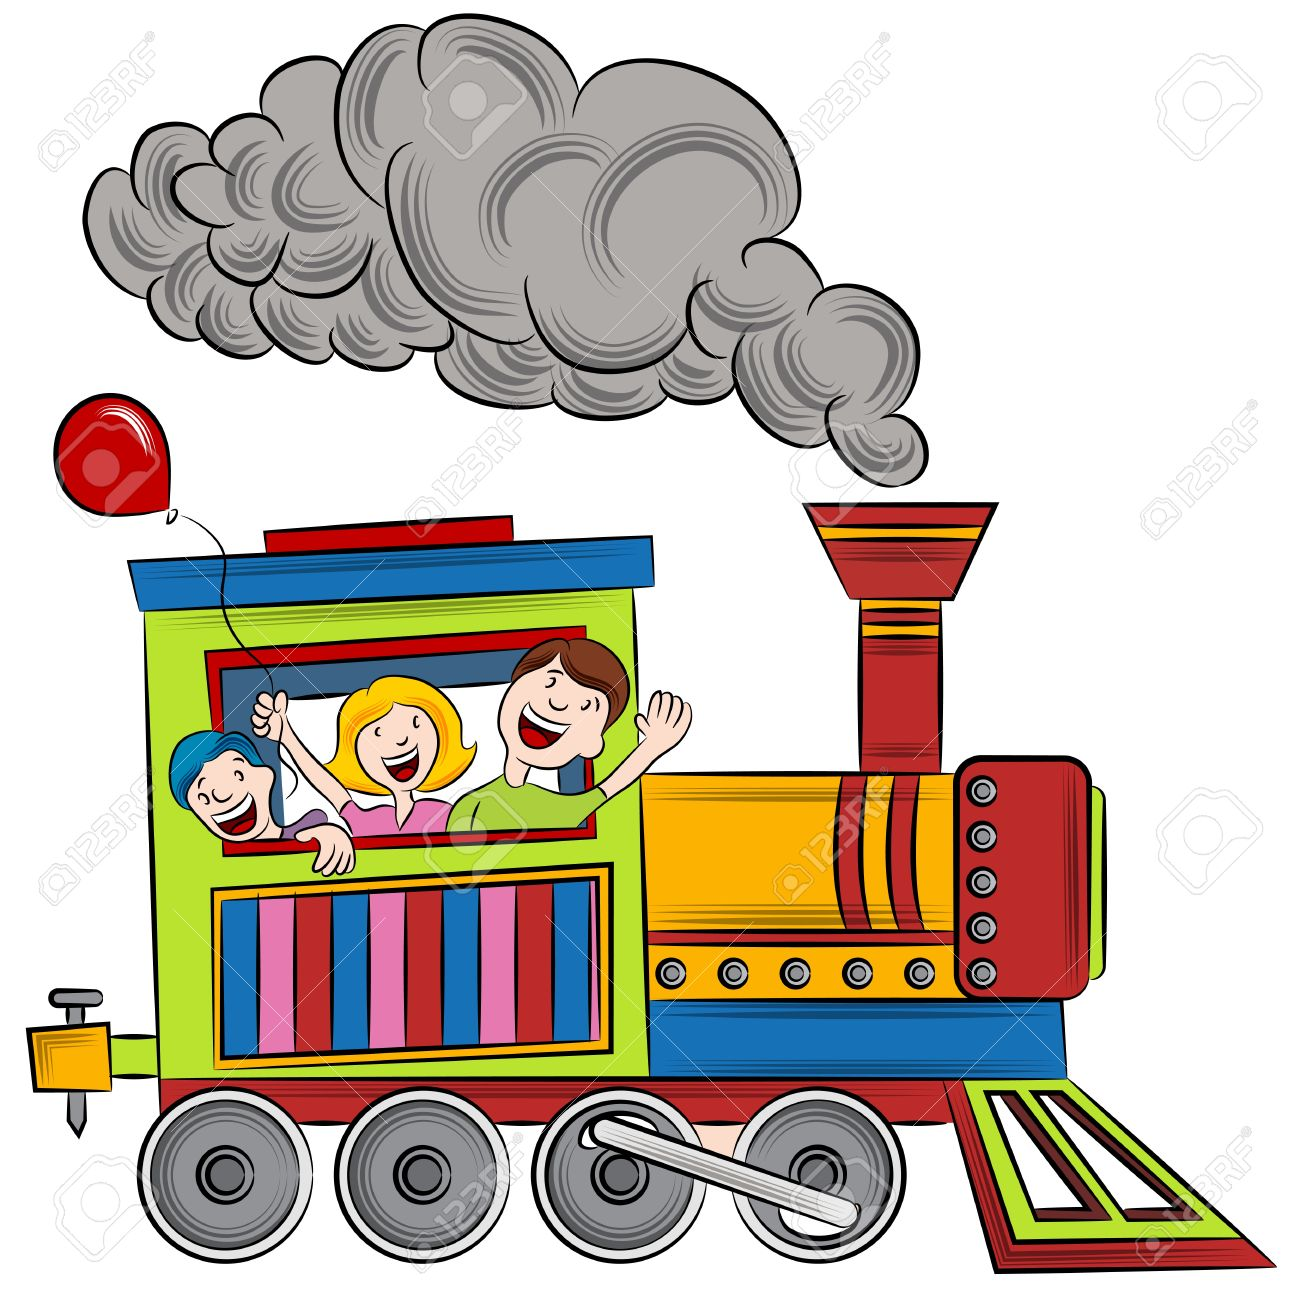 1300x1300 Locomotive Clipart Animated Train